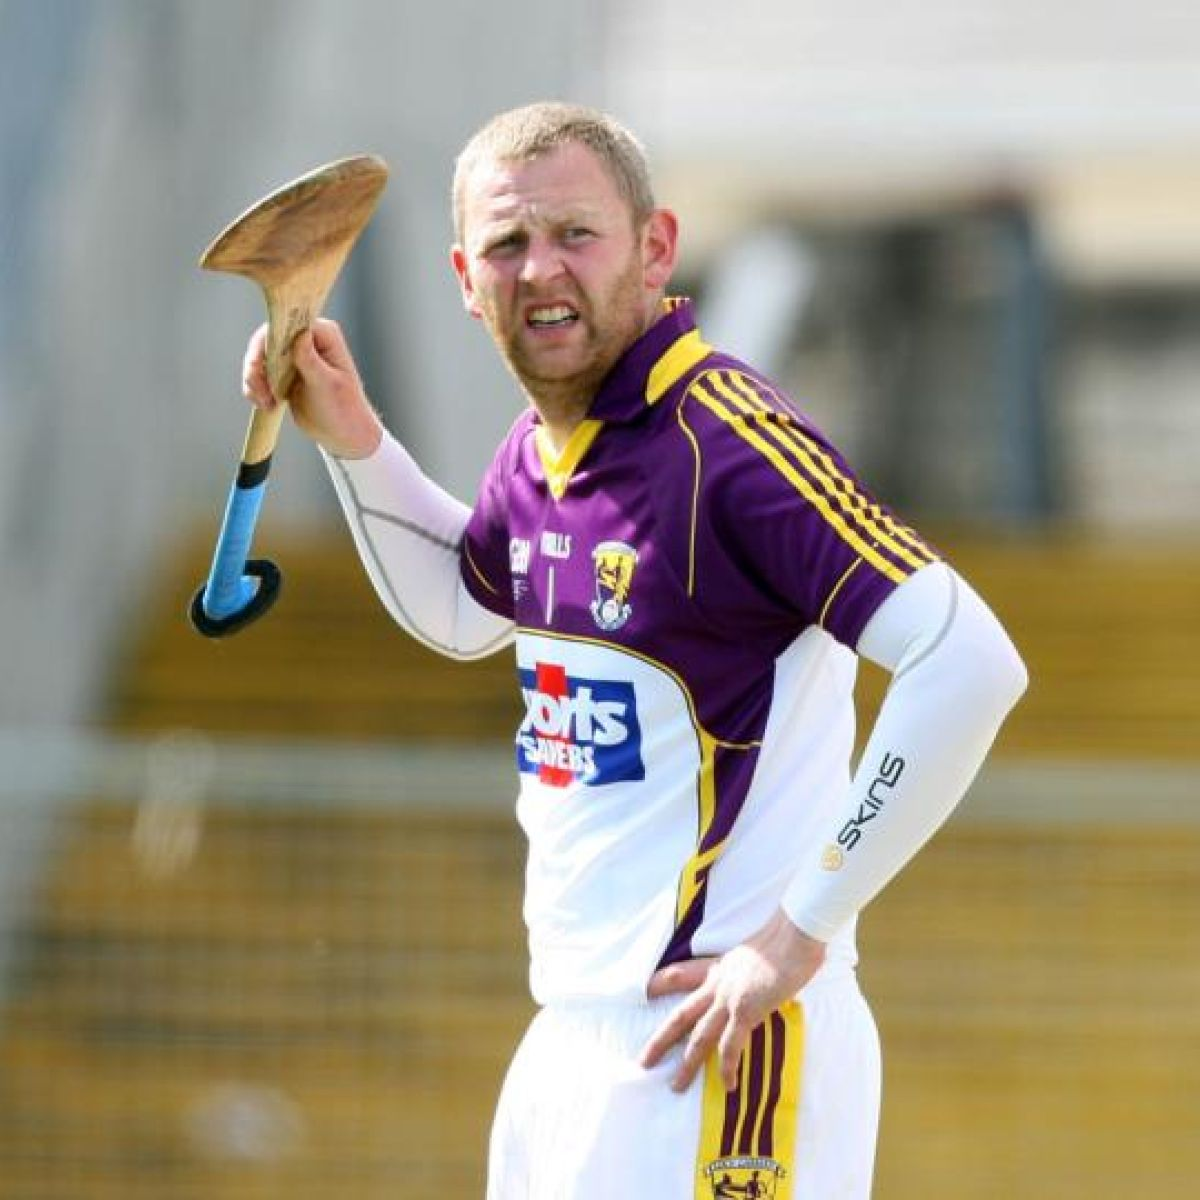 Phil Healy undaunted by changing circumstances - RTE